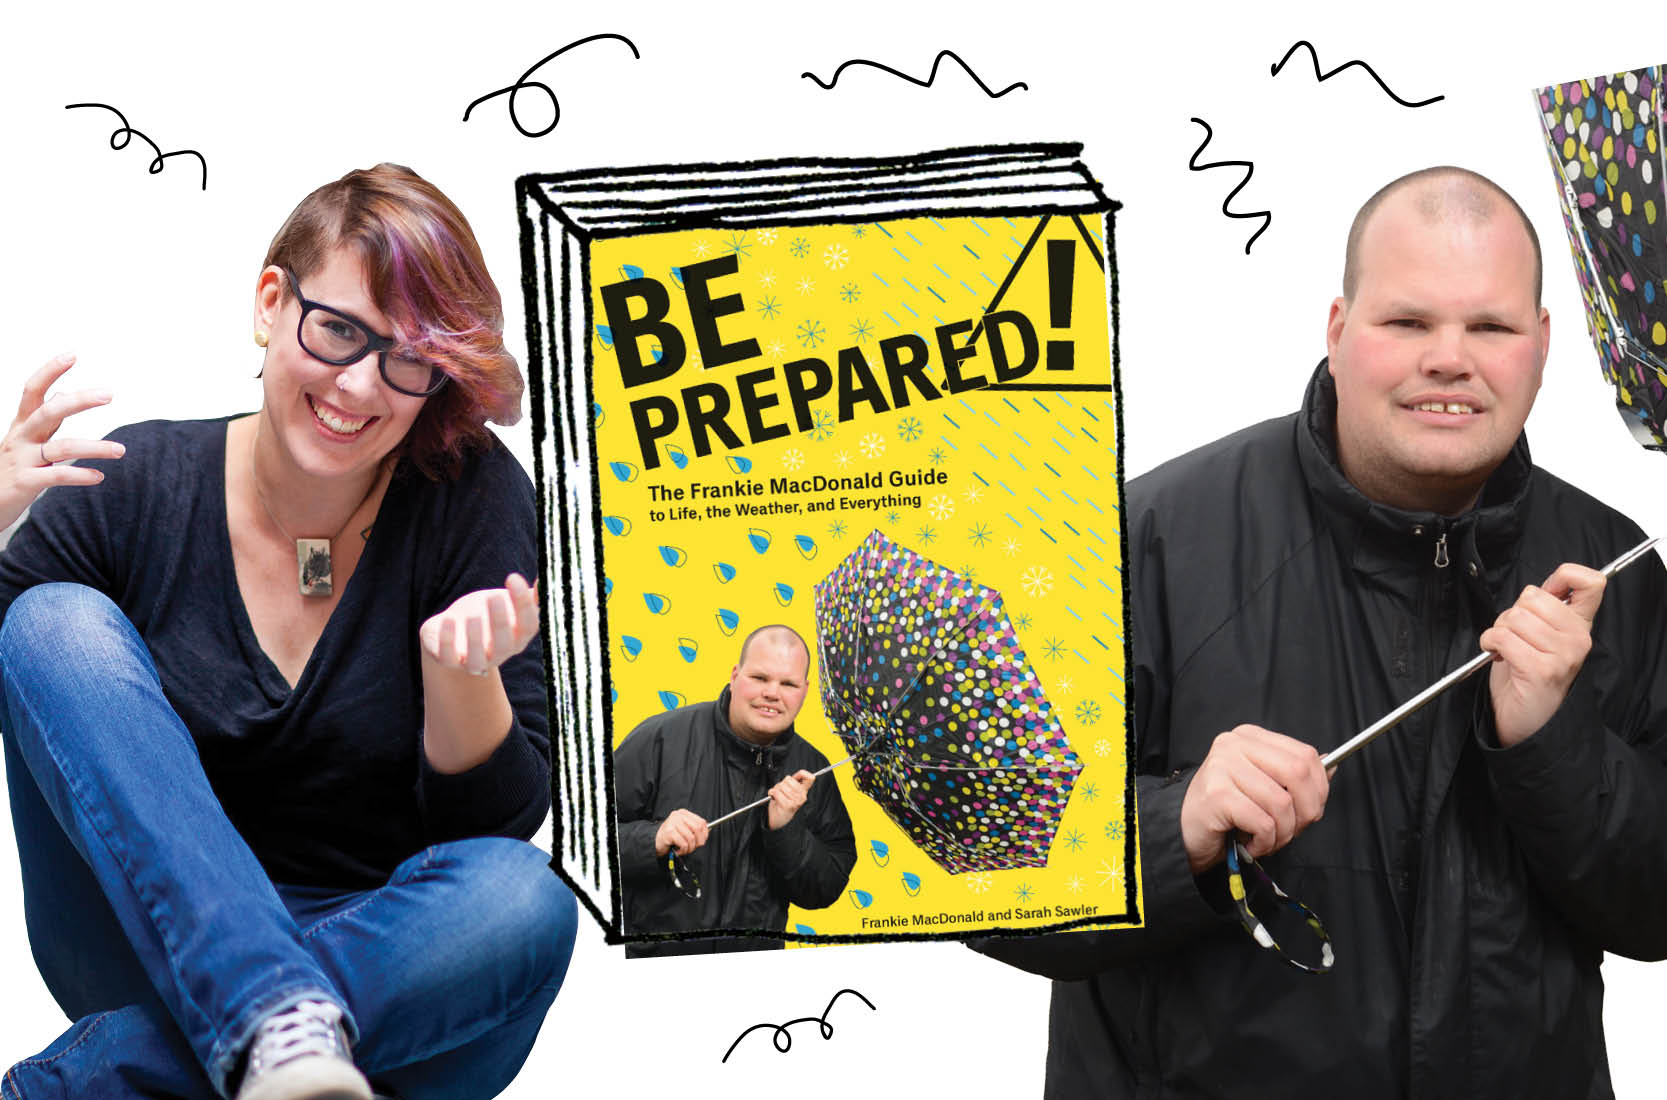 BOOK REVIEW: Be Prepared! The Frankie MacDonald Guide